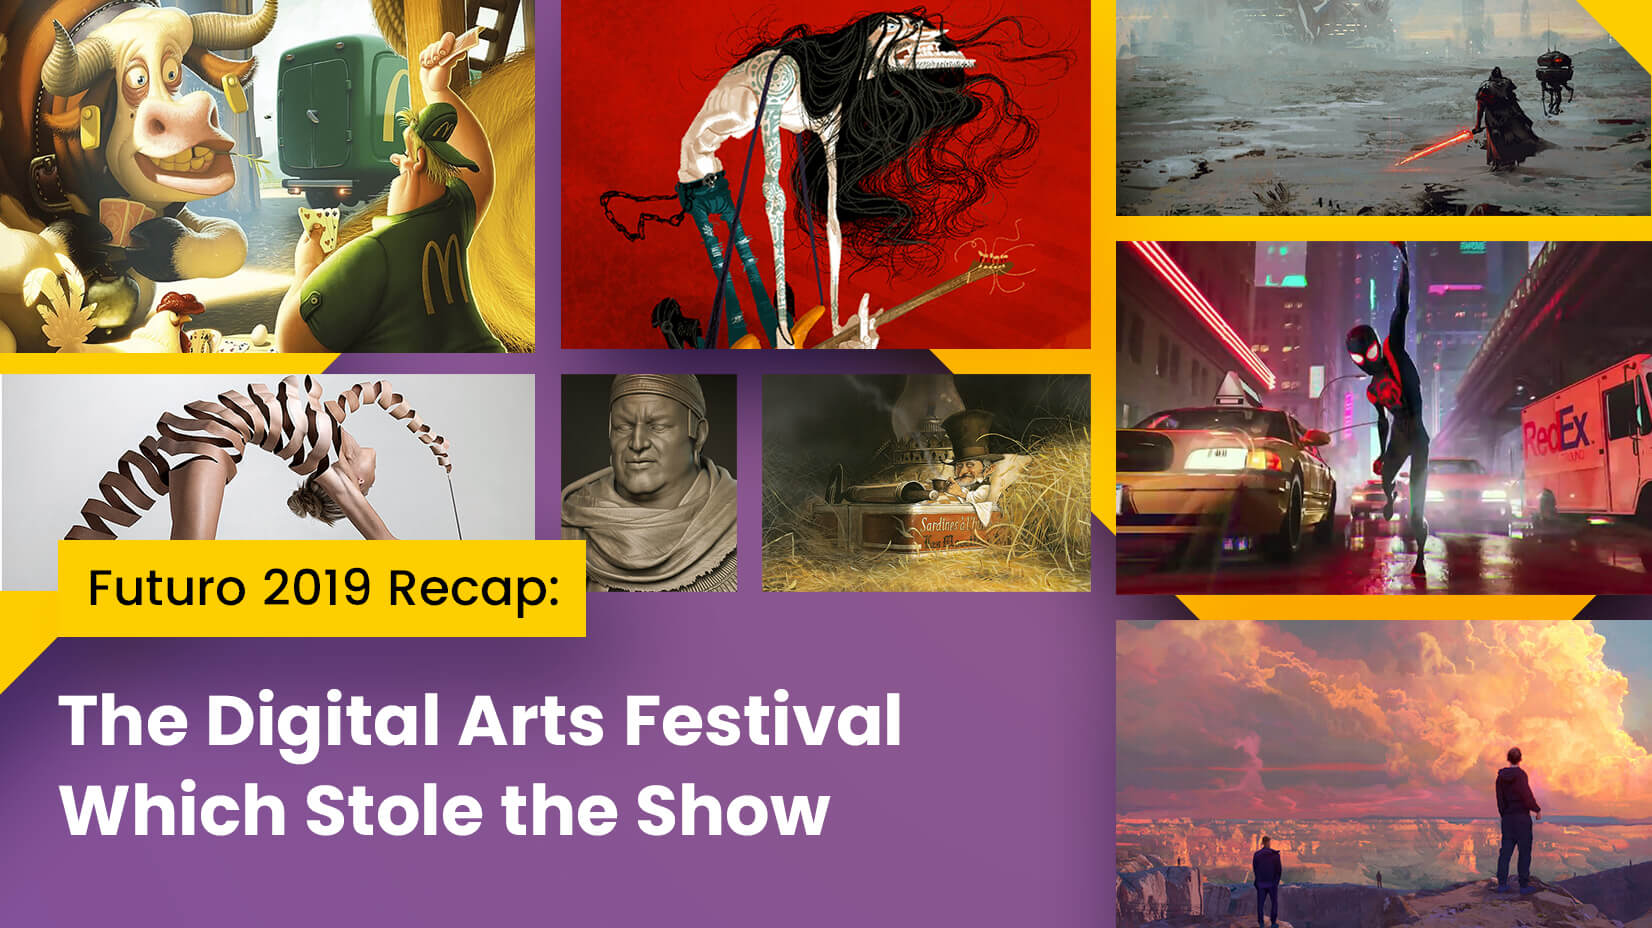 1-futuro-2019-recap-the-digital-arts-festival-which-stole-the-show